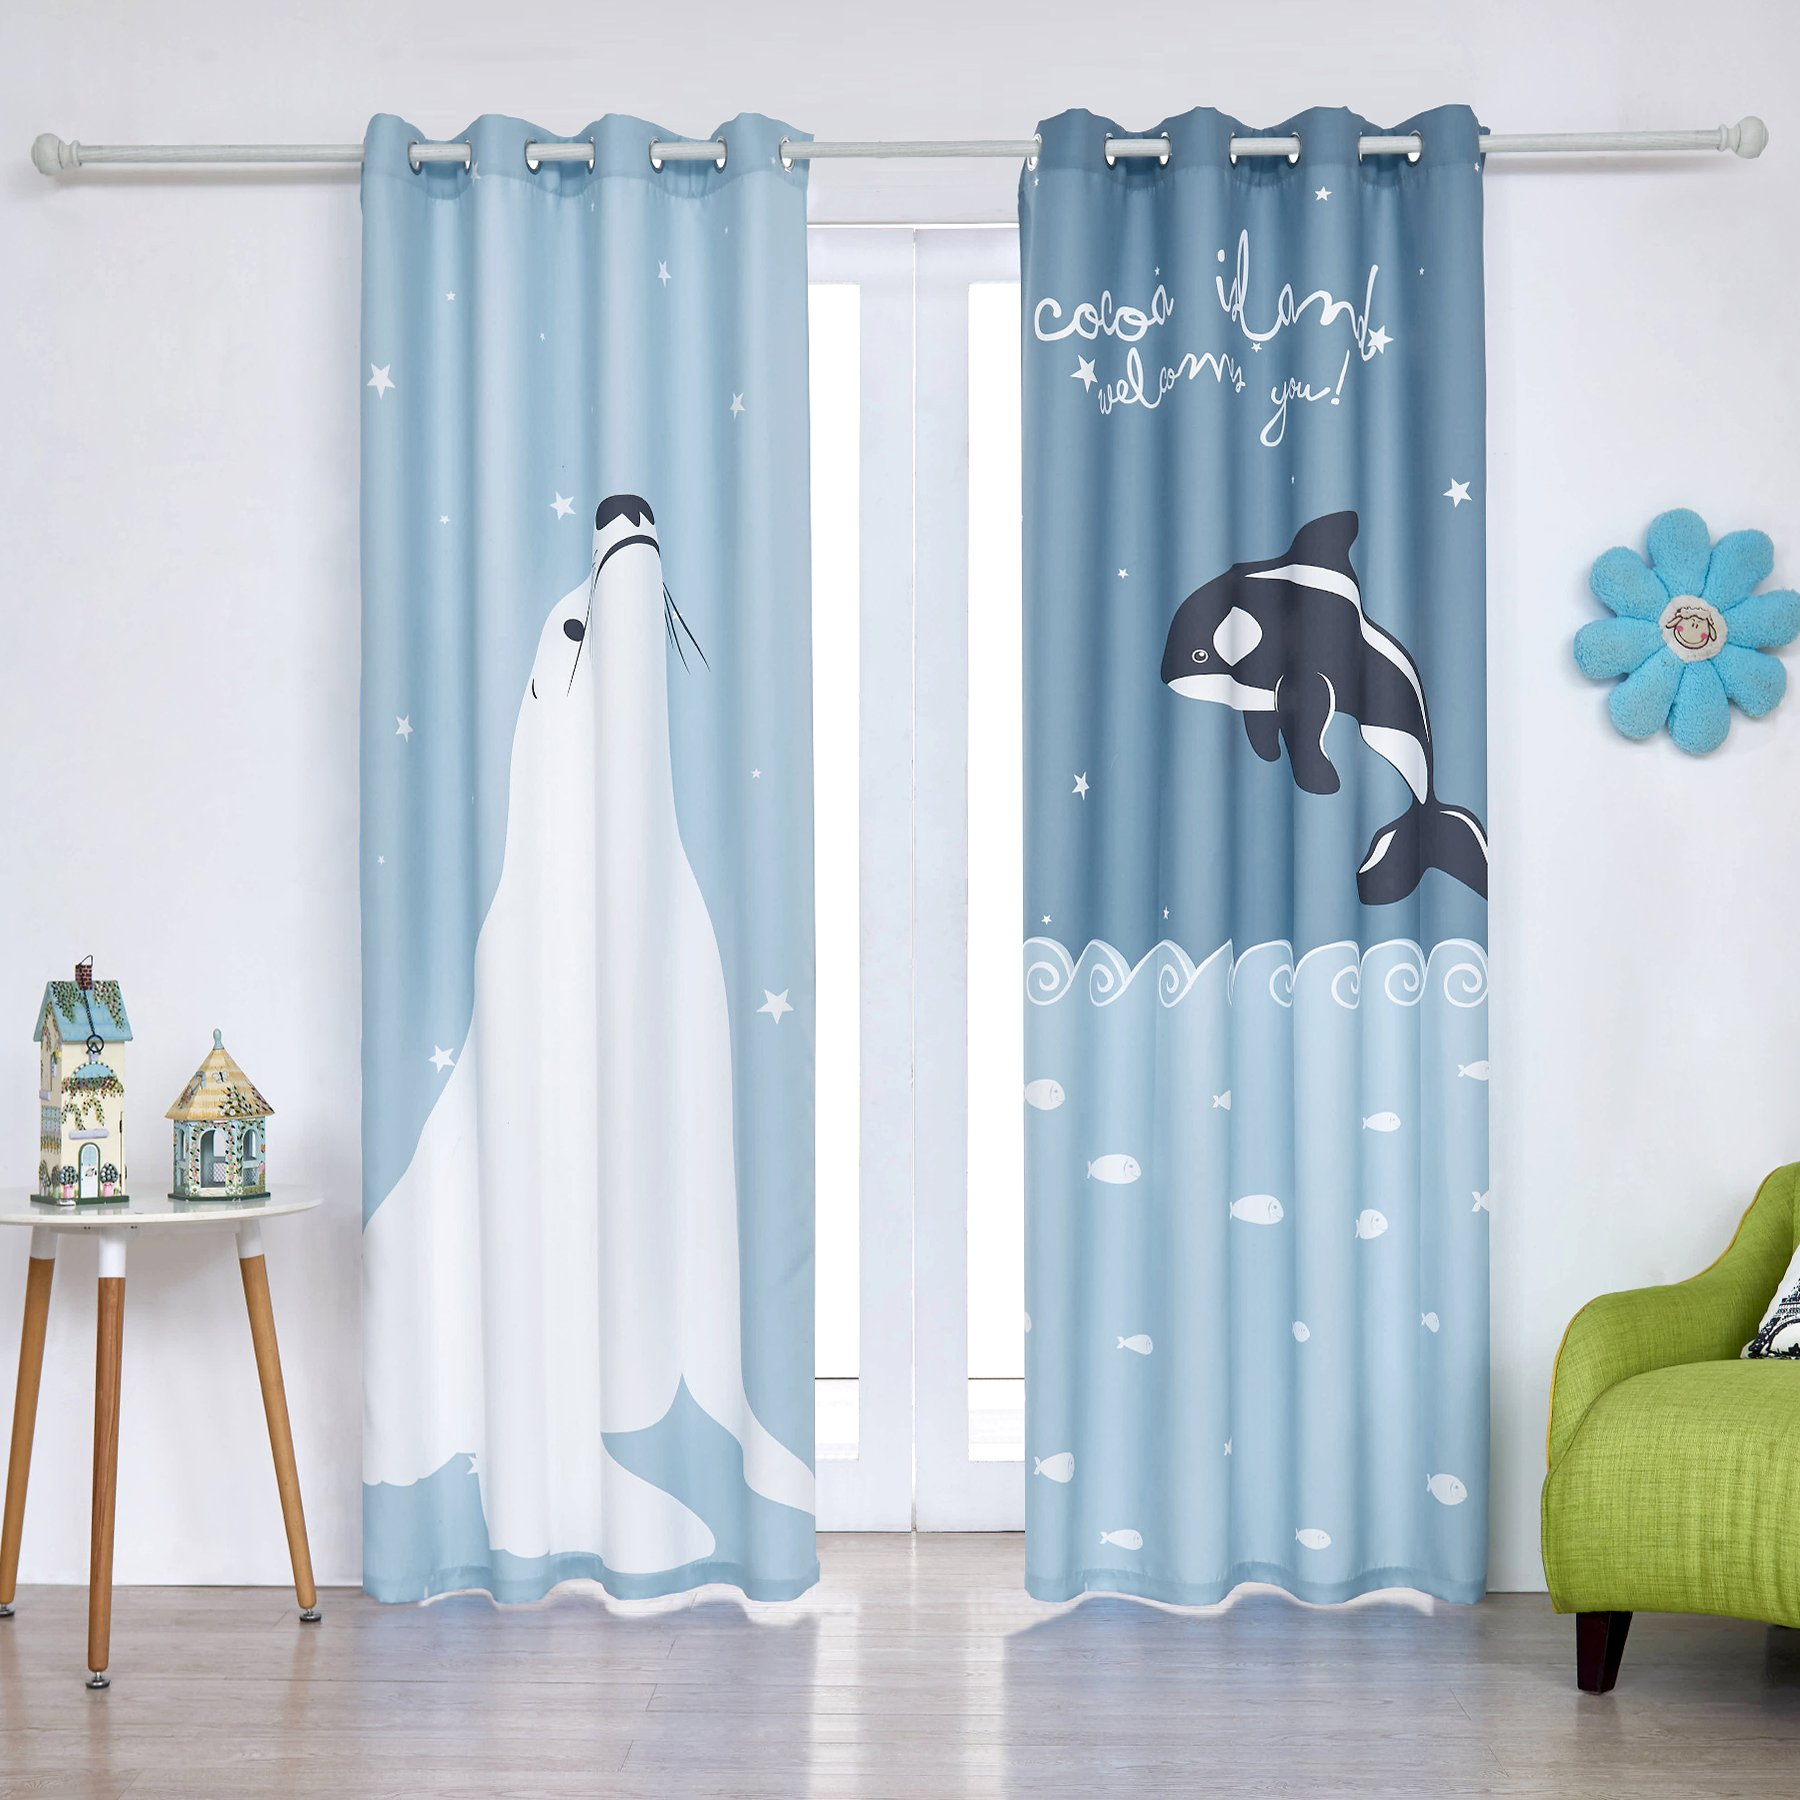 Fassbel 2 Panel Set Digital Printed Blackout Curtains for Bedroom Living Dining Kids Youth Room Window Drapes (W54× L95, Sea Lion and Dolphin)